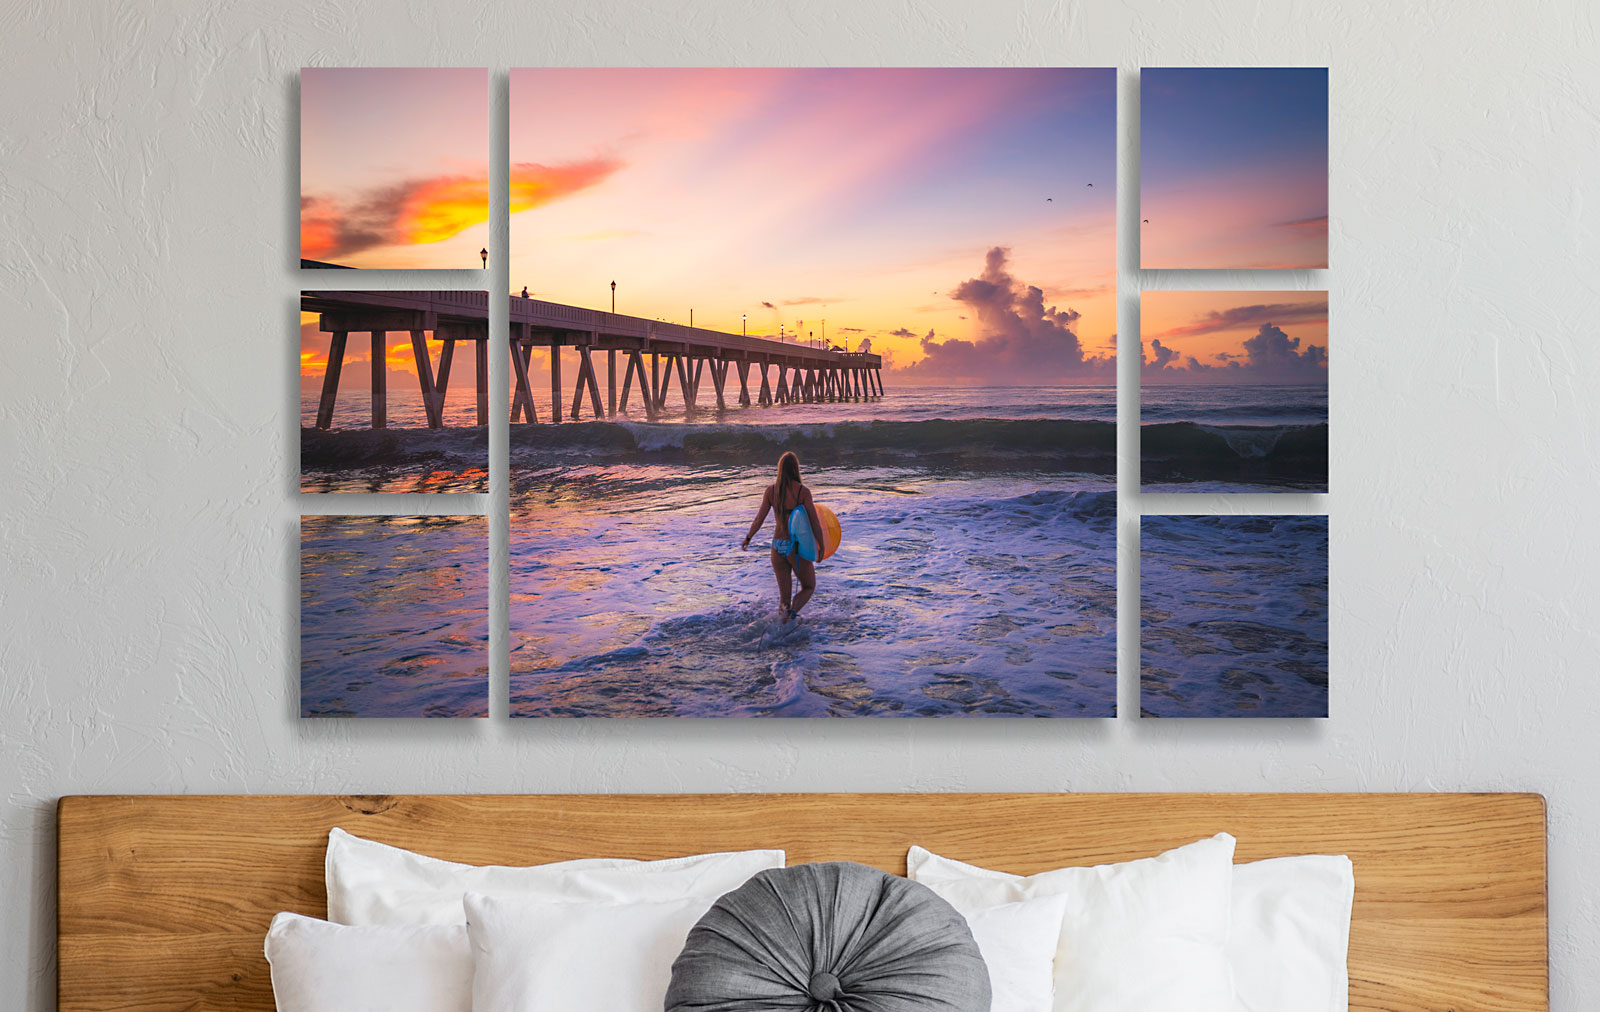 Wall Clusters & Splits - Wall Displays Featuring Your Images on Acrylic Prints